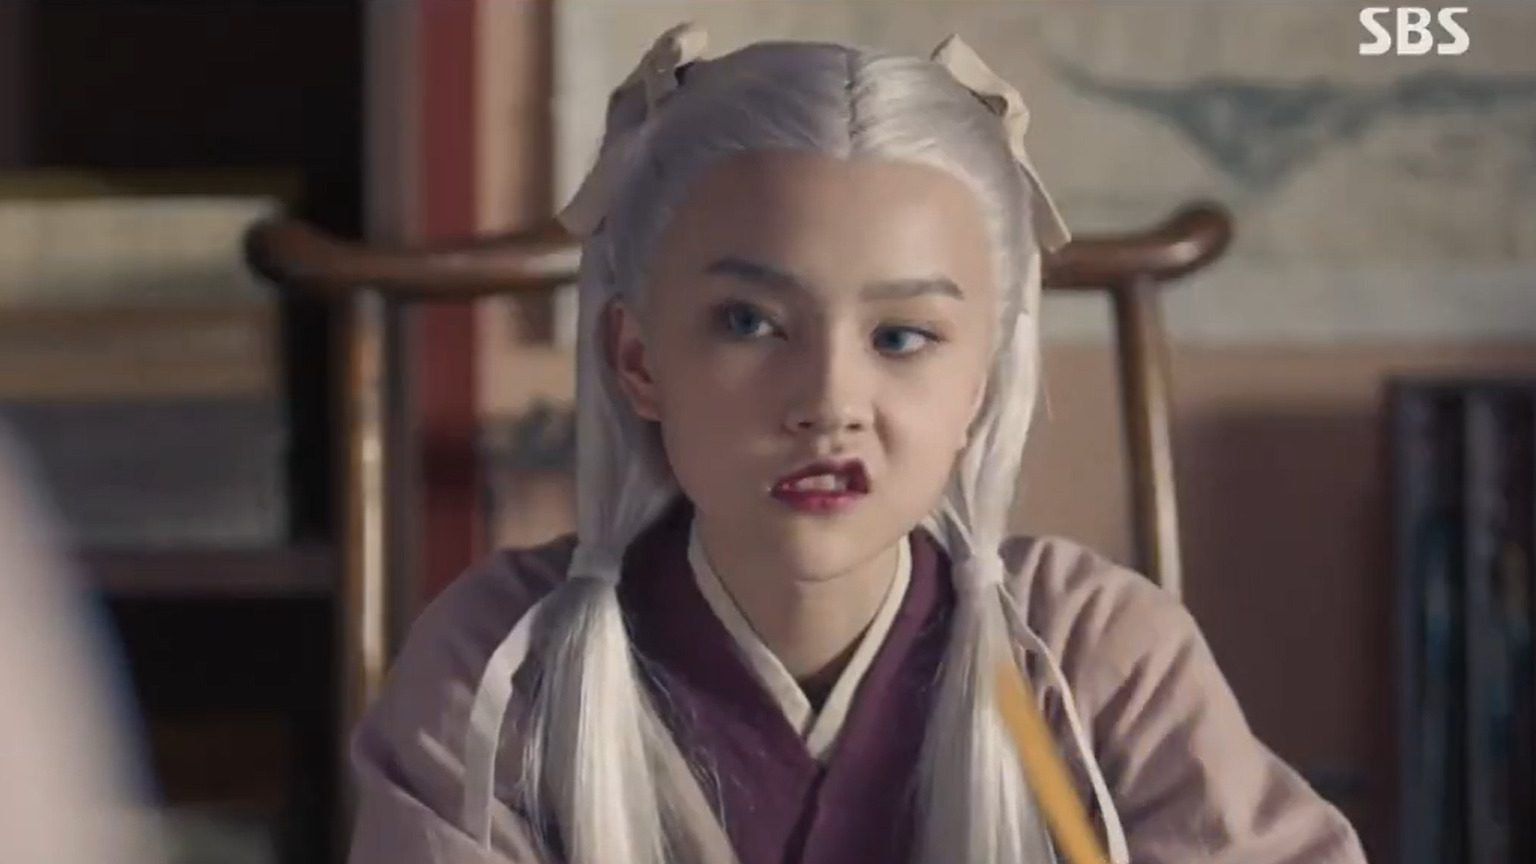 Lovers of The Red Sky Episode 11